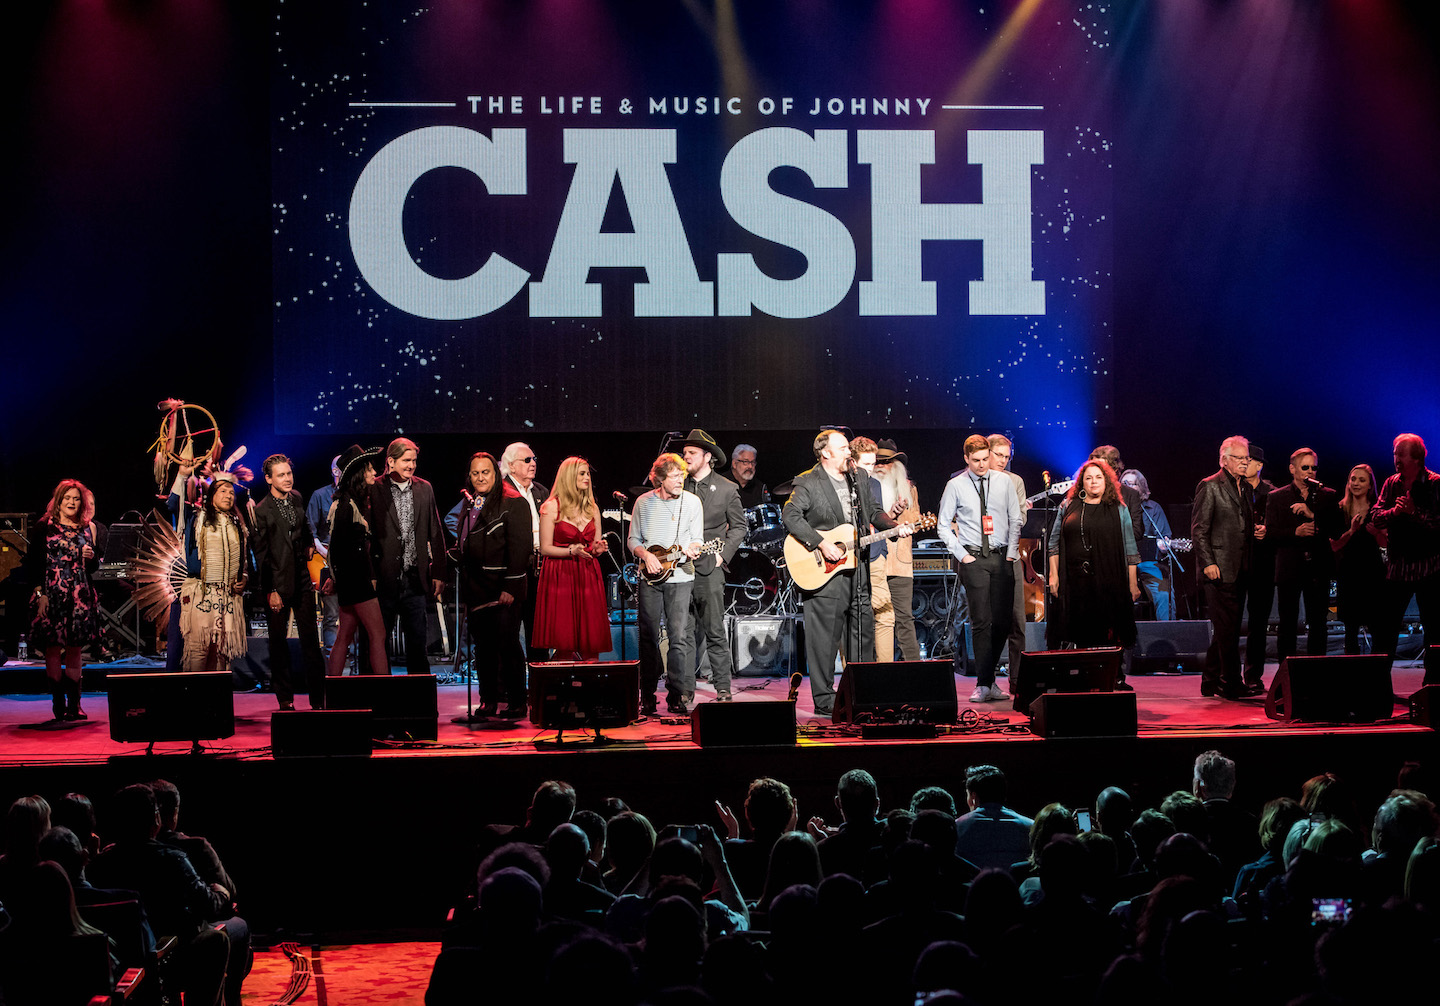 The Johnny Cash tribute. (Photo by Amber Patrick, courtesy of the Rock and Roll Hall of Fame)